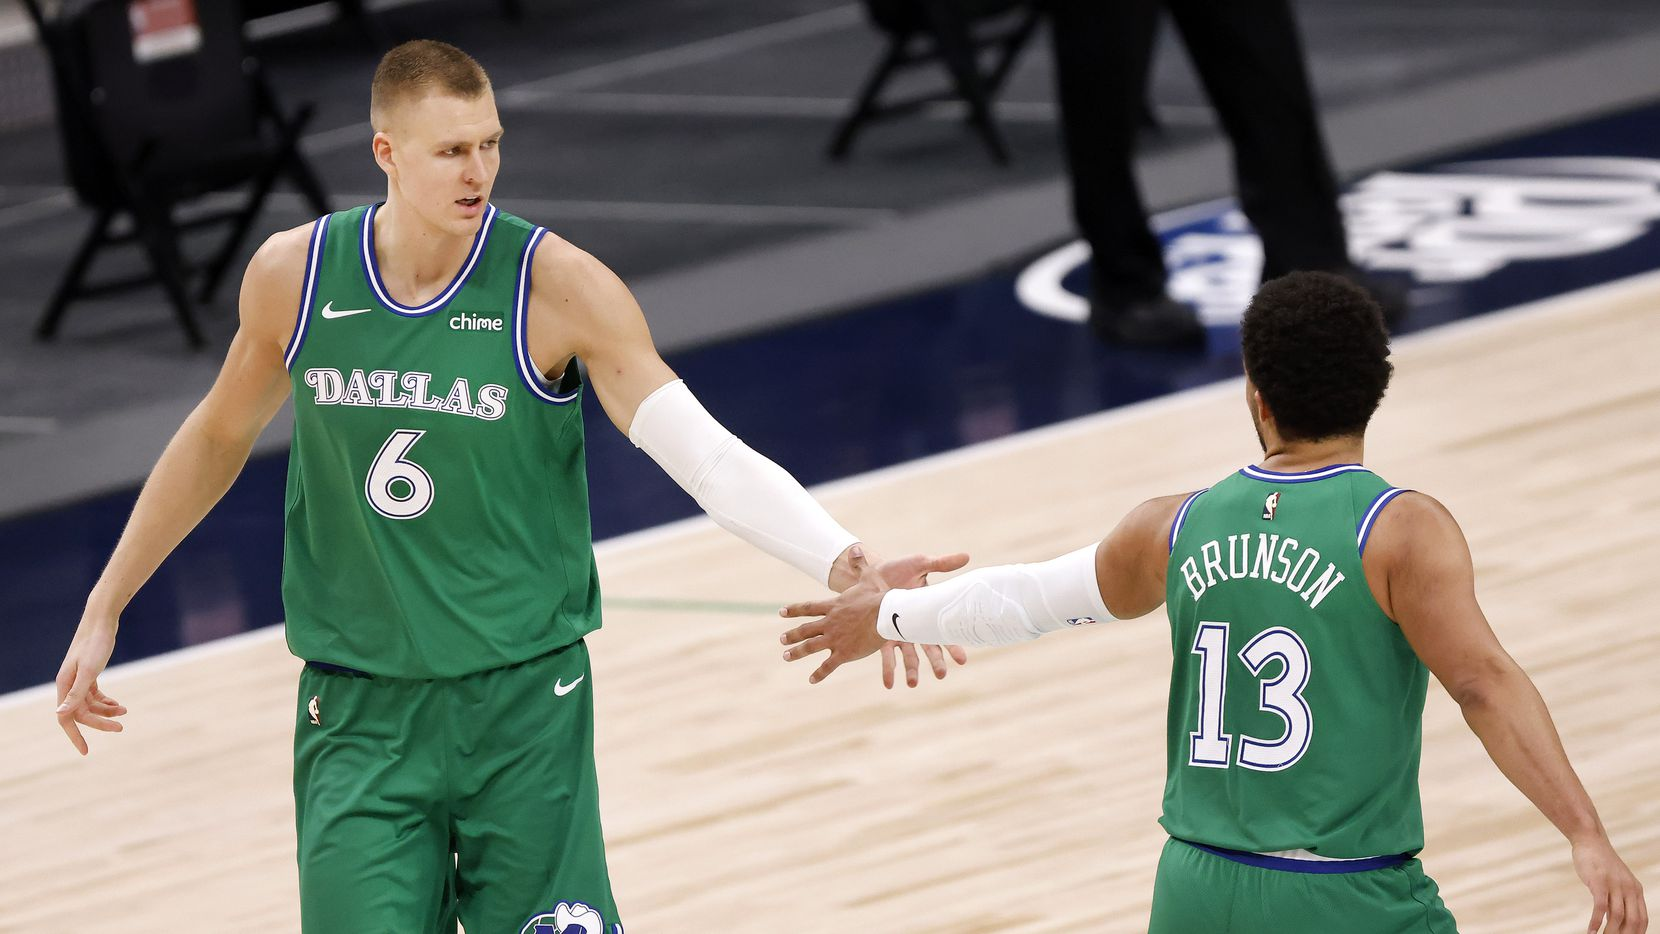 Mavericks center Kristaps Porzingis (6) is congratulated by teammate Jalen Brunson (13) after making a 3-pointer against the Thunder at American Airlines Center in Dallas on Wednesday, March 3, 2021.